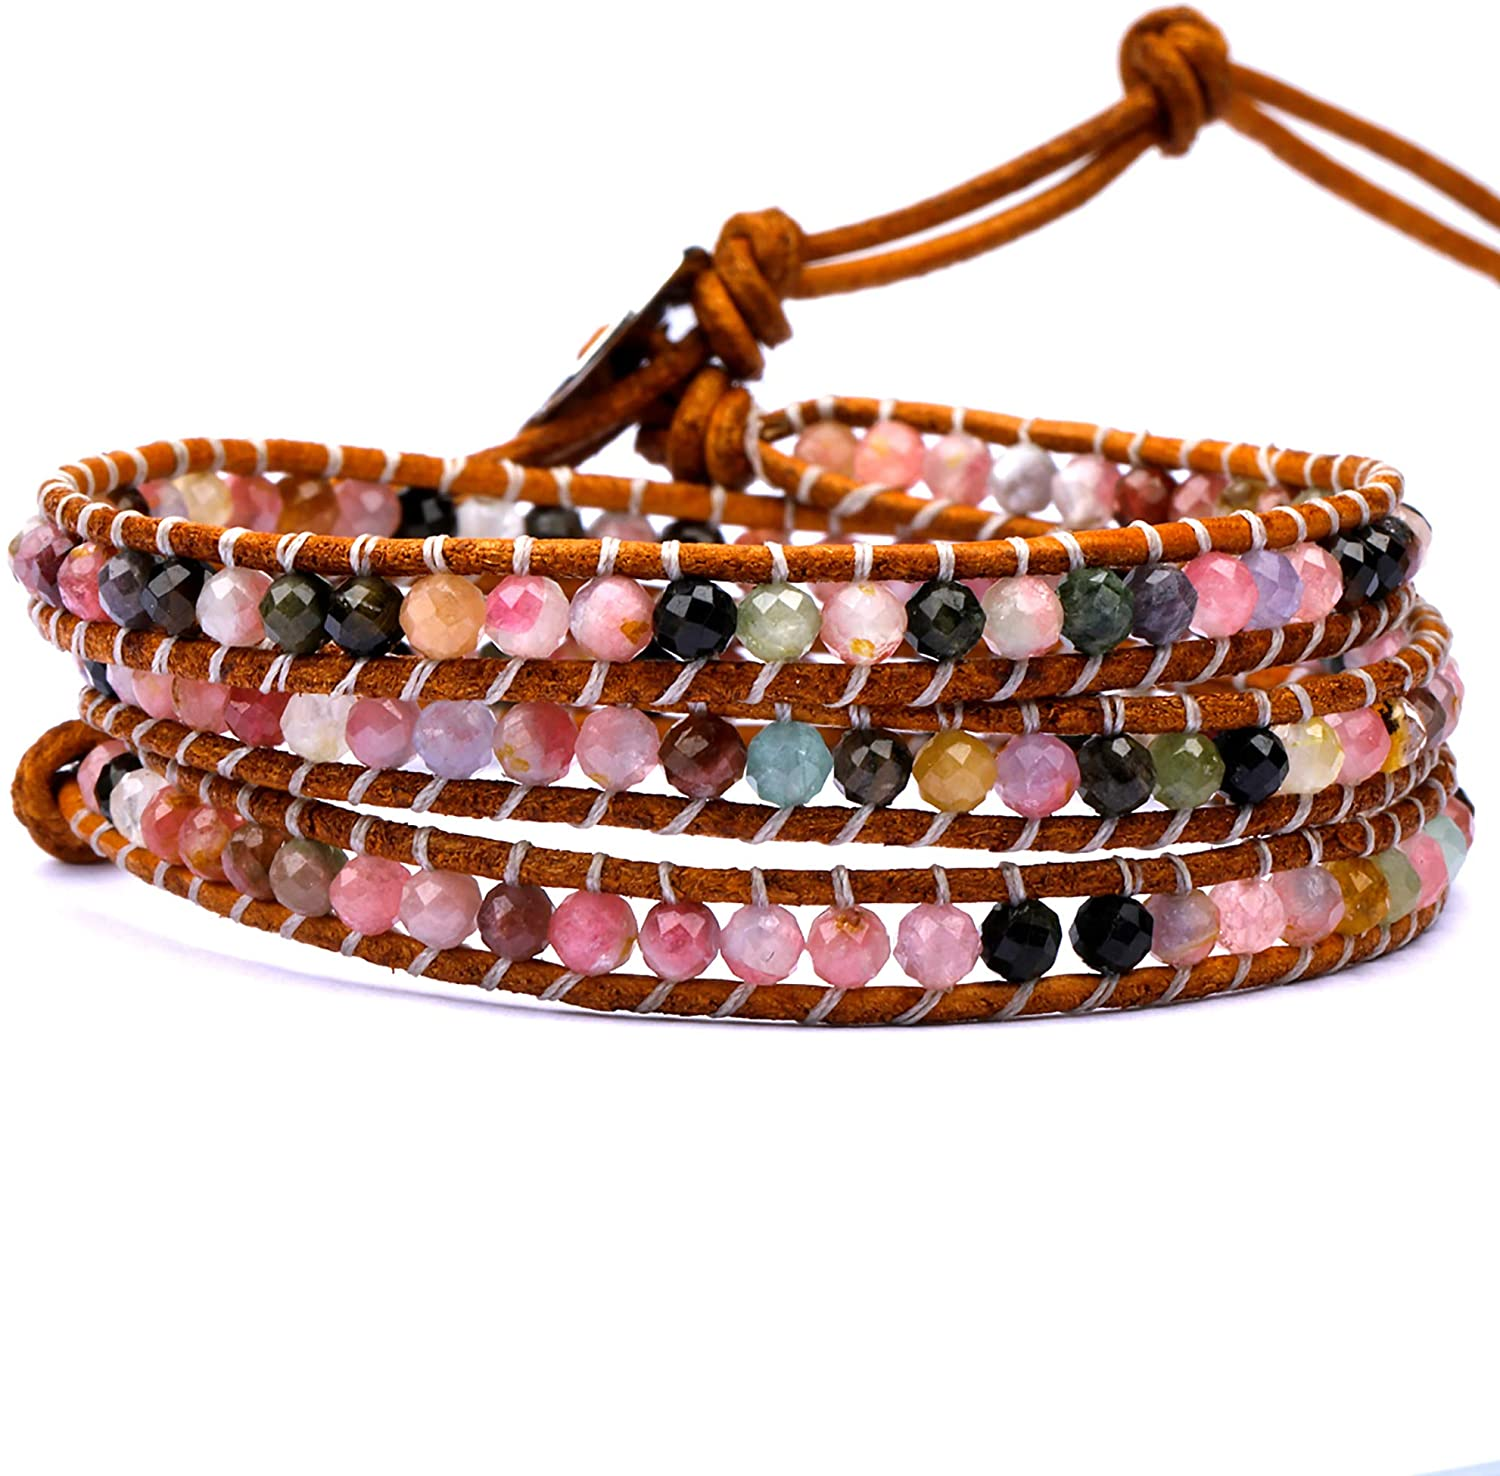 Layered Leather Bracelets for Women Jewelry Gift, Bohemian Style & Natural Round Faceted Stone Beads Braided 3 Wraps Adjustable Handmade Multilayer Wrap Bracelet With Stainless Steel Snap Button Lock